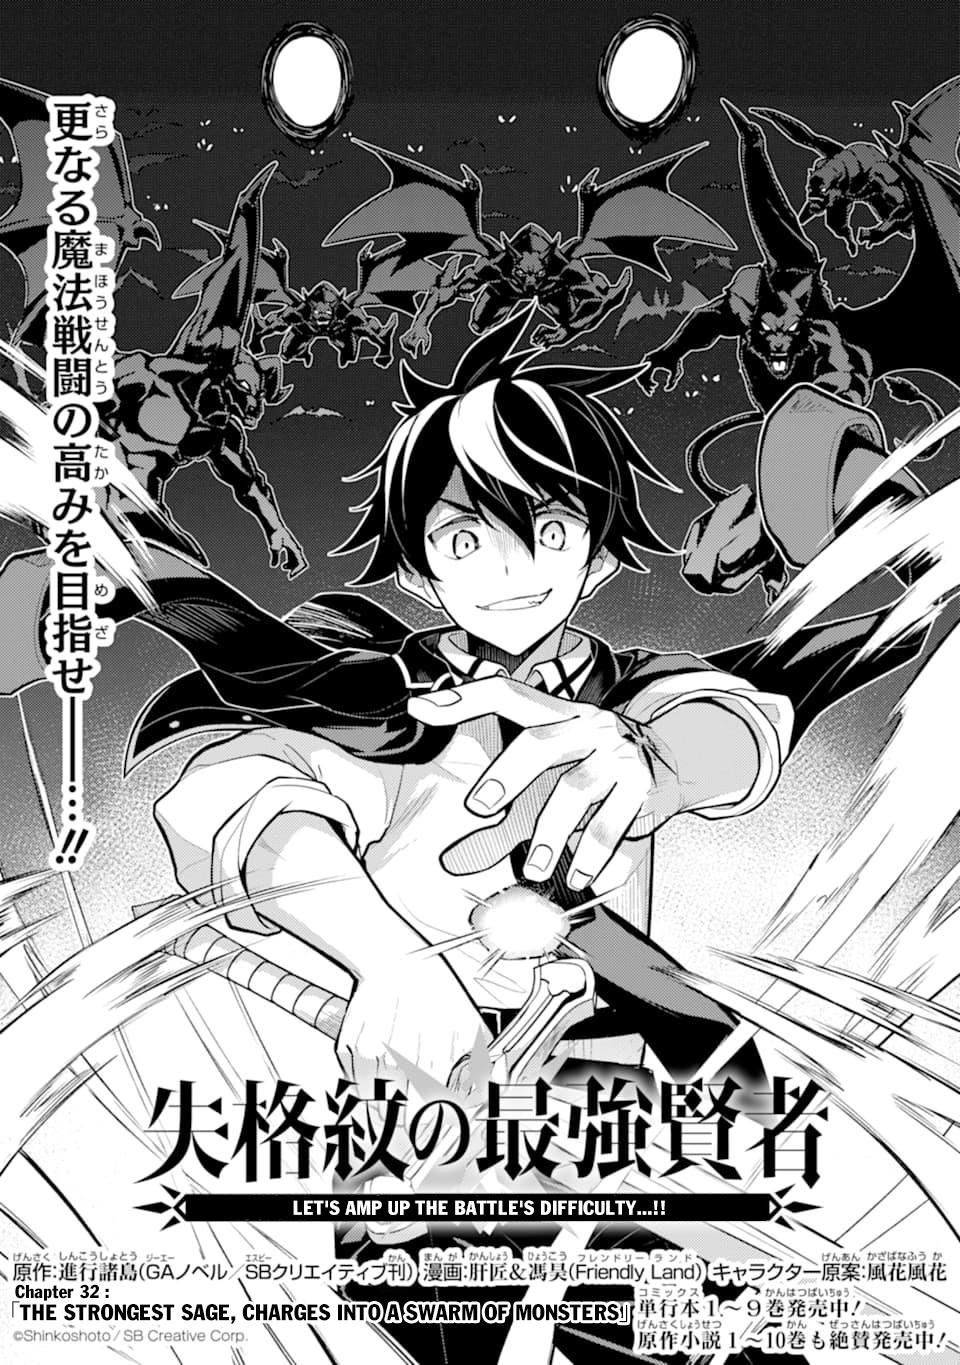 Manga Marked for Failure, the World's Strongest Sage Reincarnates for a Do-Over! - Chapter 32 Page 2